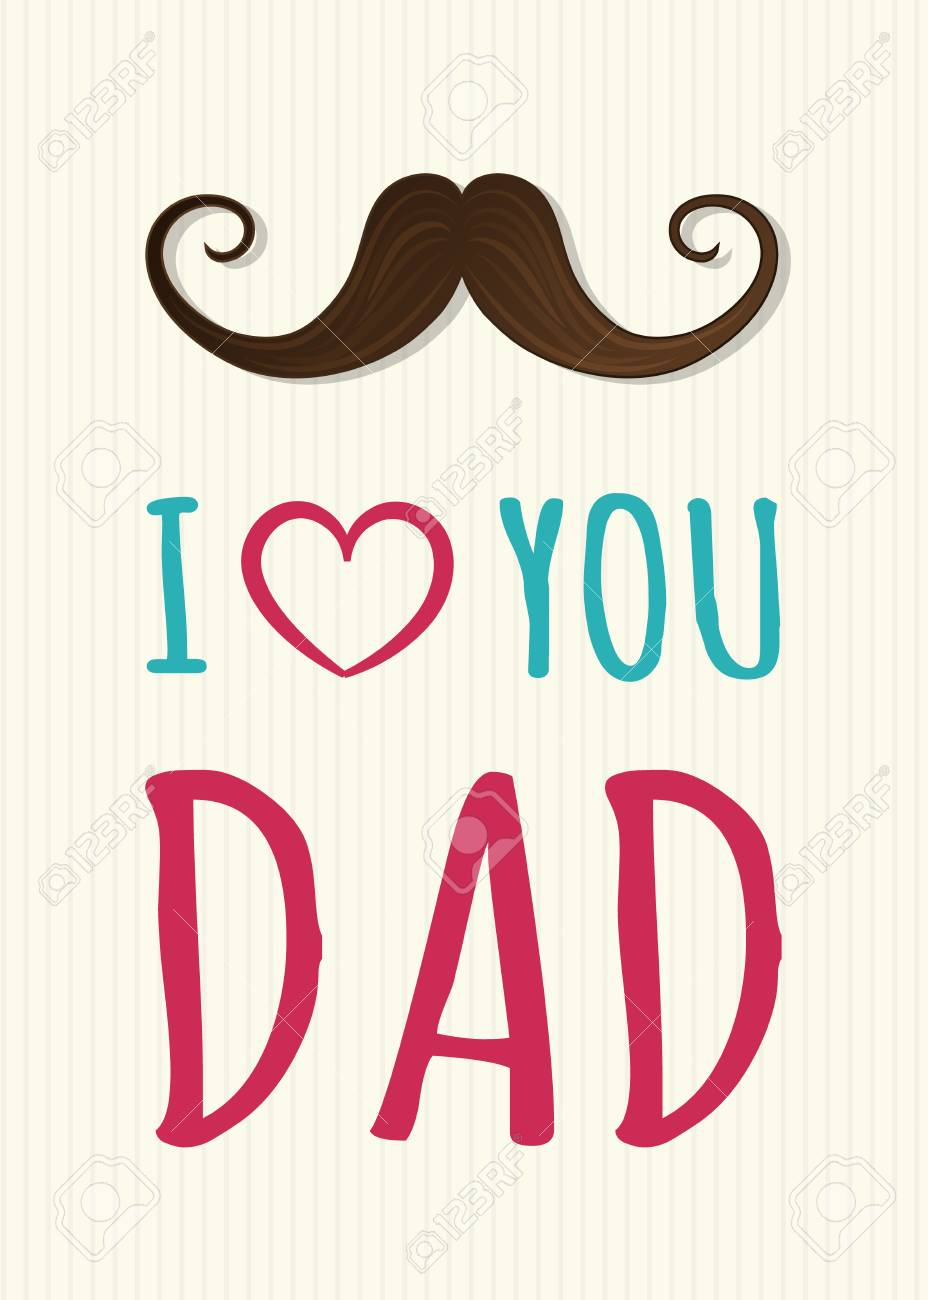 I Love You Dad Cute Background With Mustache For Father S Day Royalty Free Cliparts Vectors And Stock Illustration Image 101169831